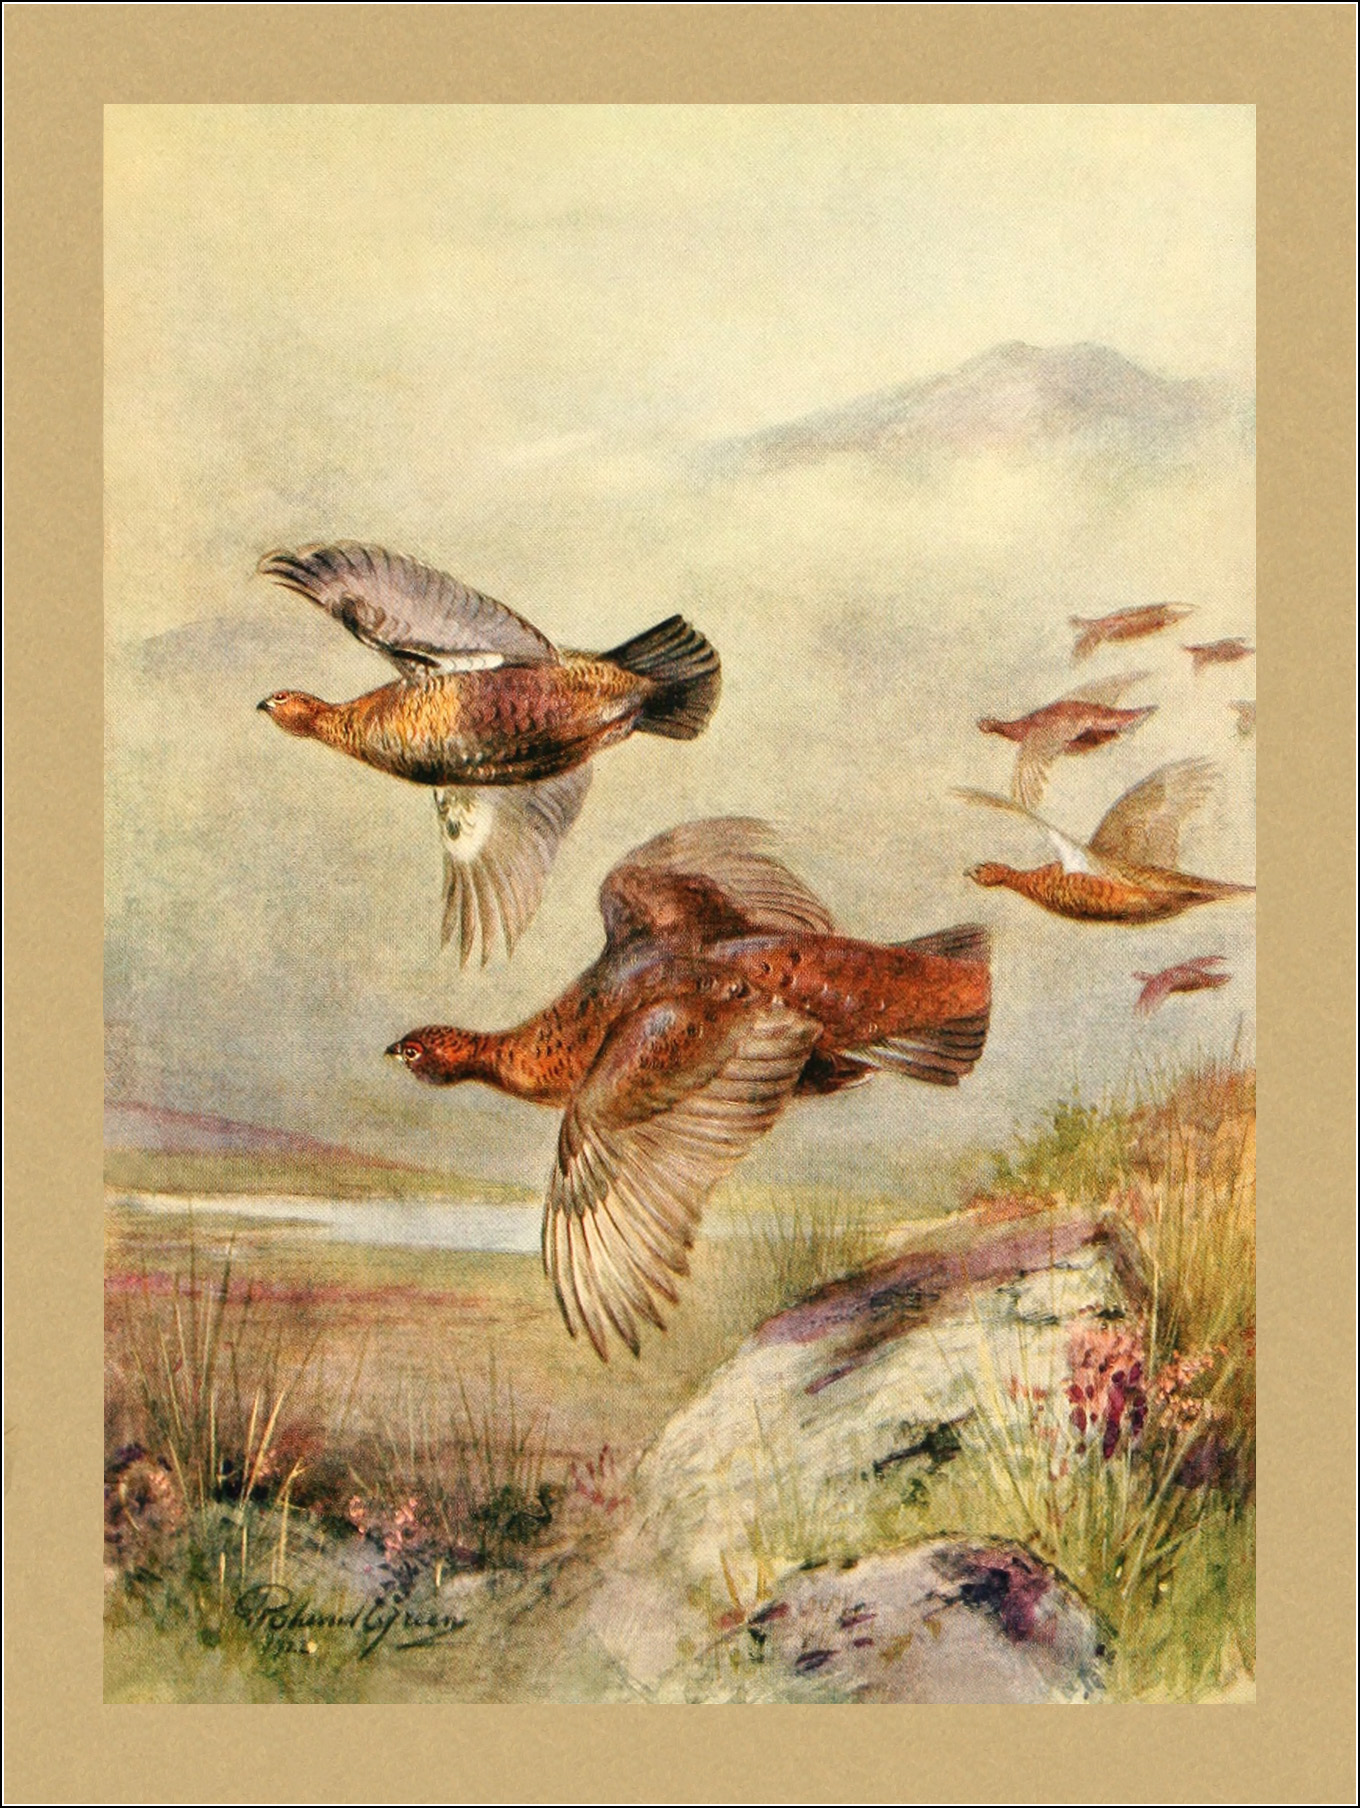 Roland Green, F.Z.S., Birds in flight